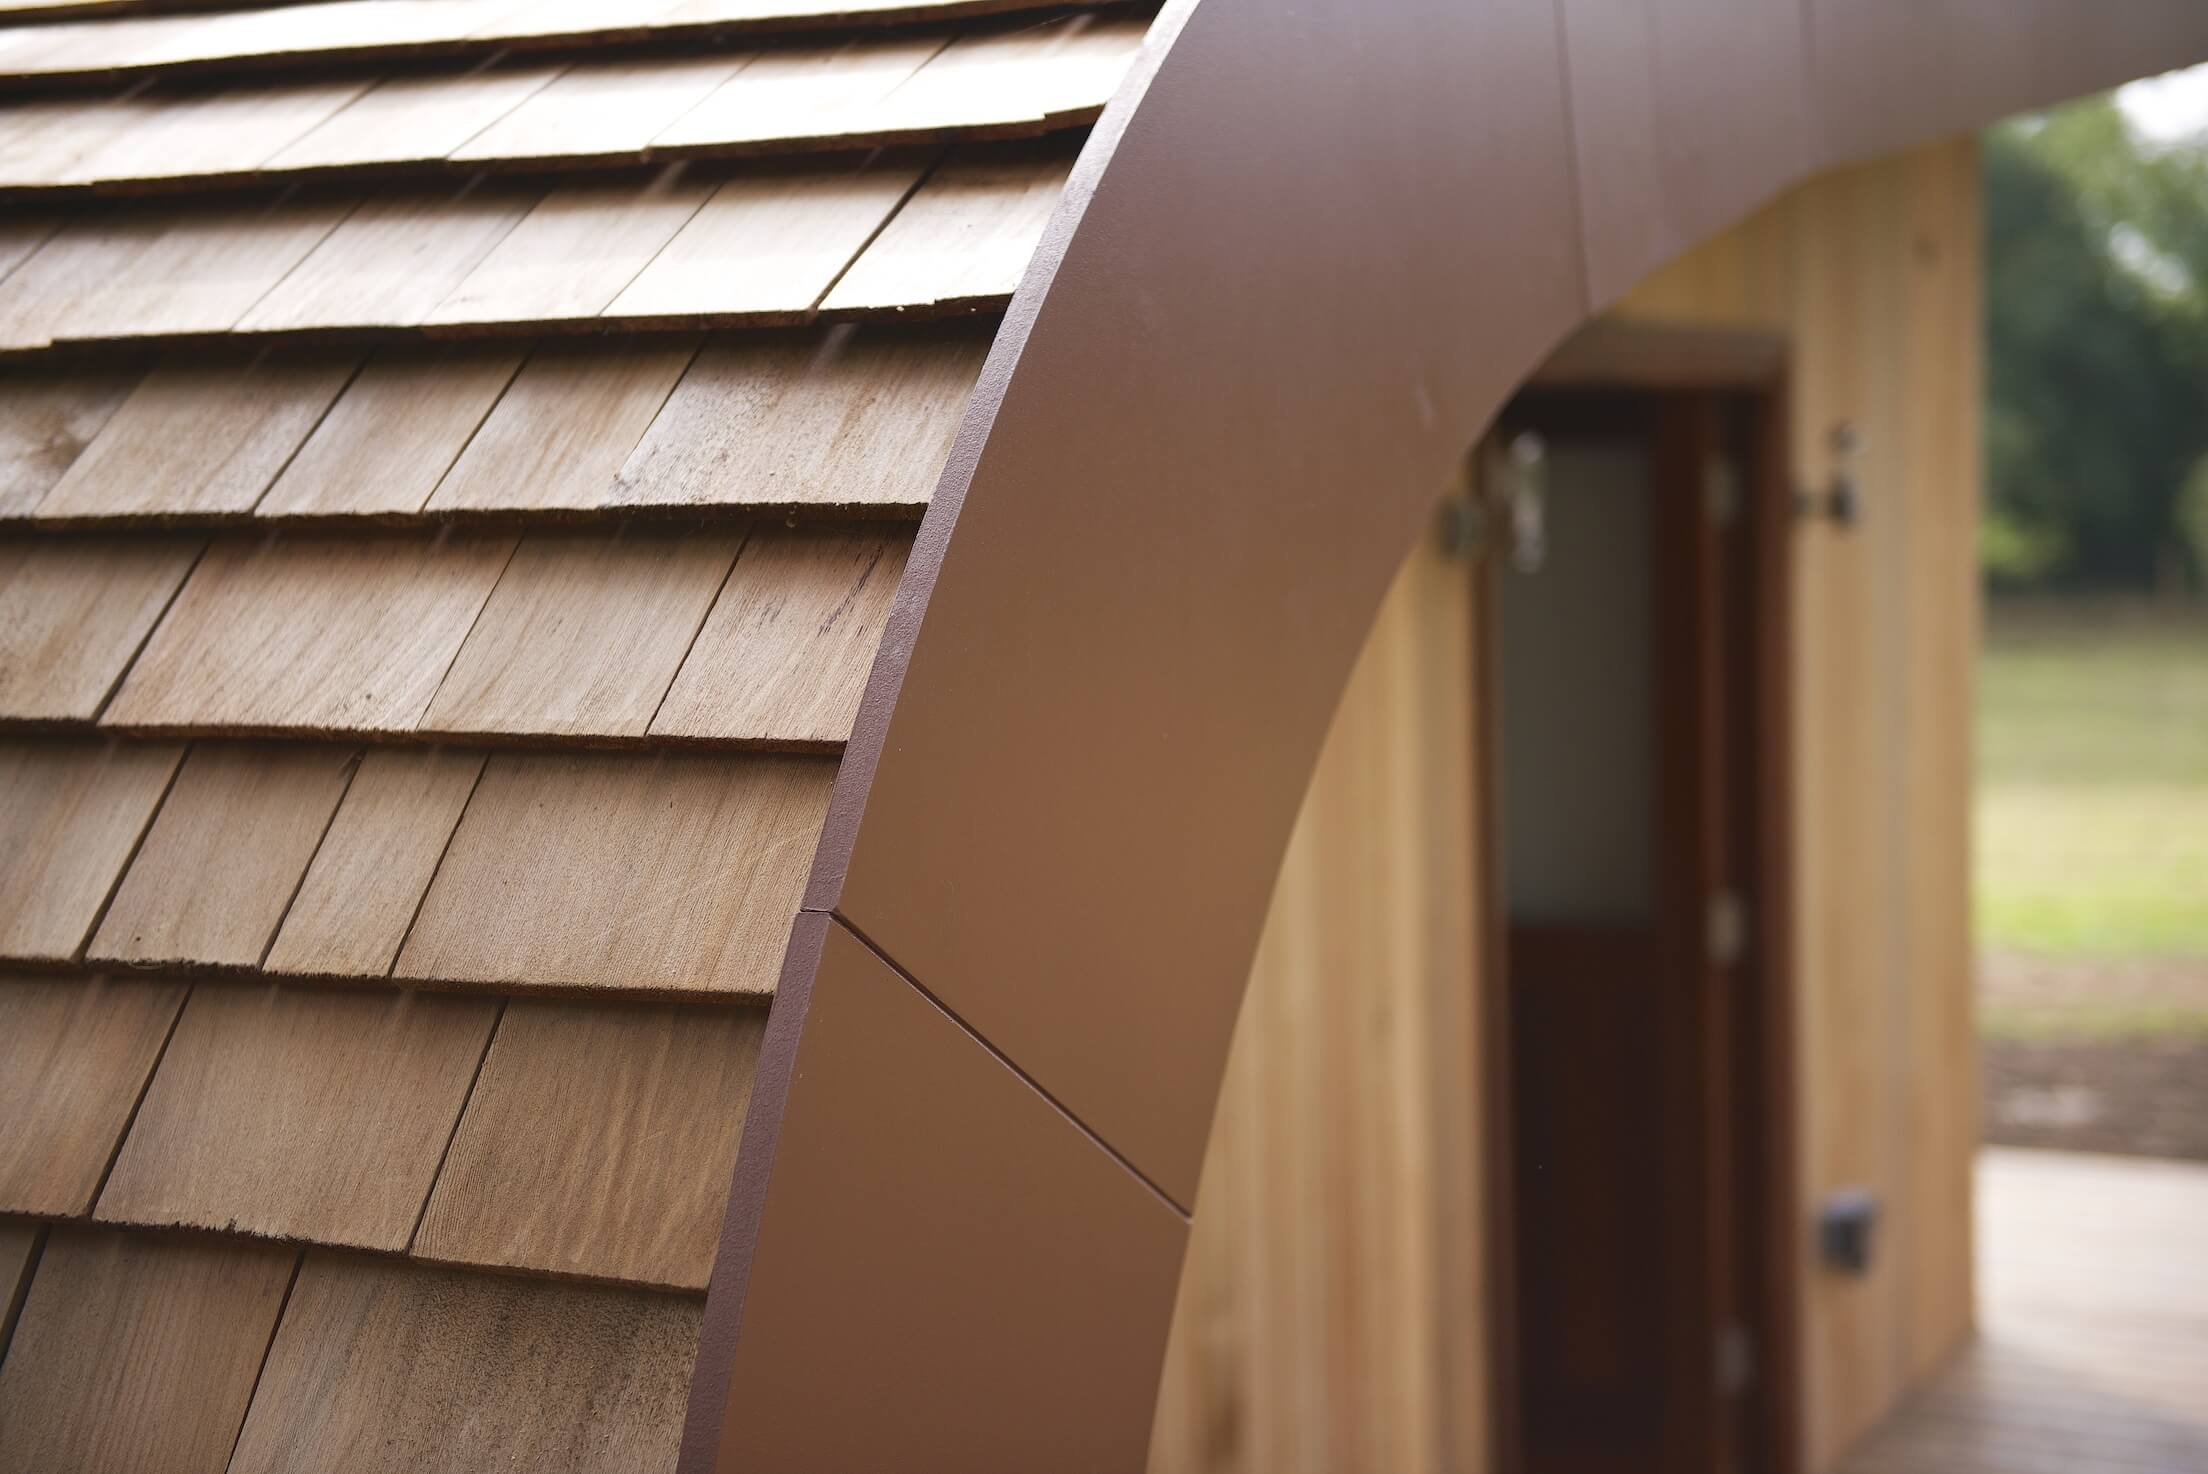 Close view of the cedar shingles forming the curved portion of the roof.